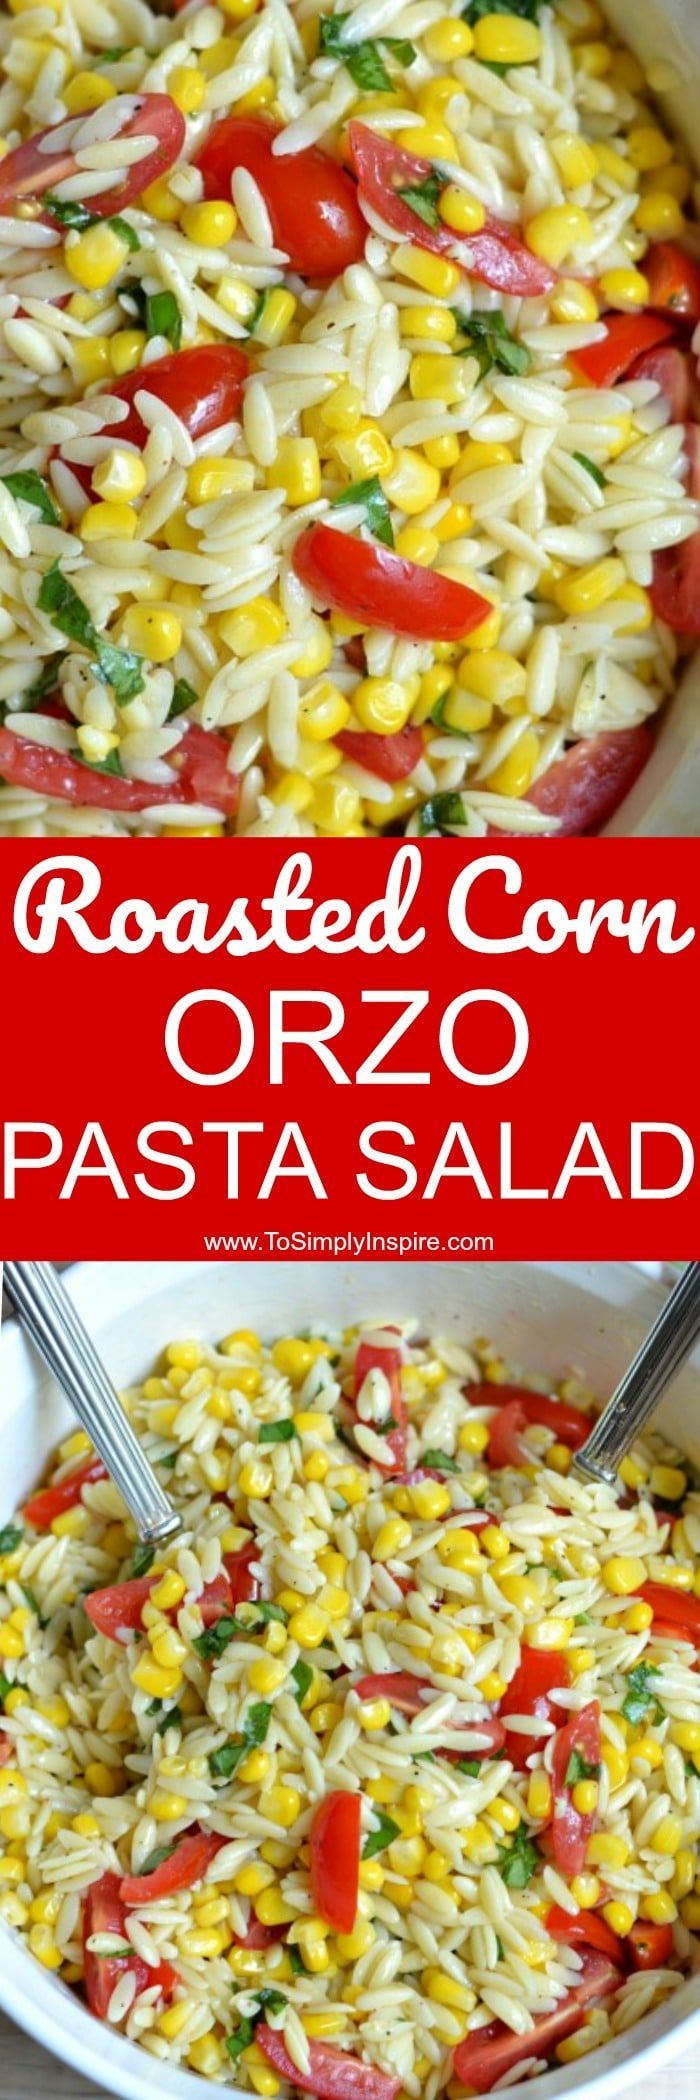 This Roasted Corn Orzo Pasta Salad has loads of delicious flavors from simply adding fresh basil and garlic along with a fabulous light sauce. Always a hit at any get-together.  #pastasalad #orzo #easy